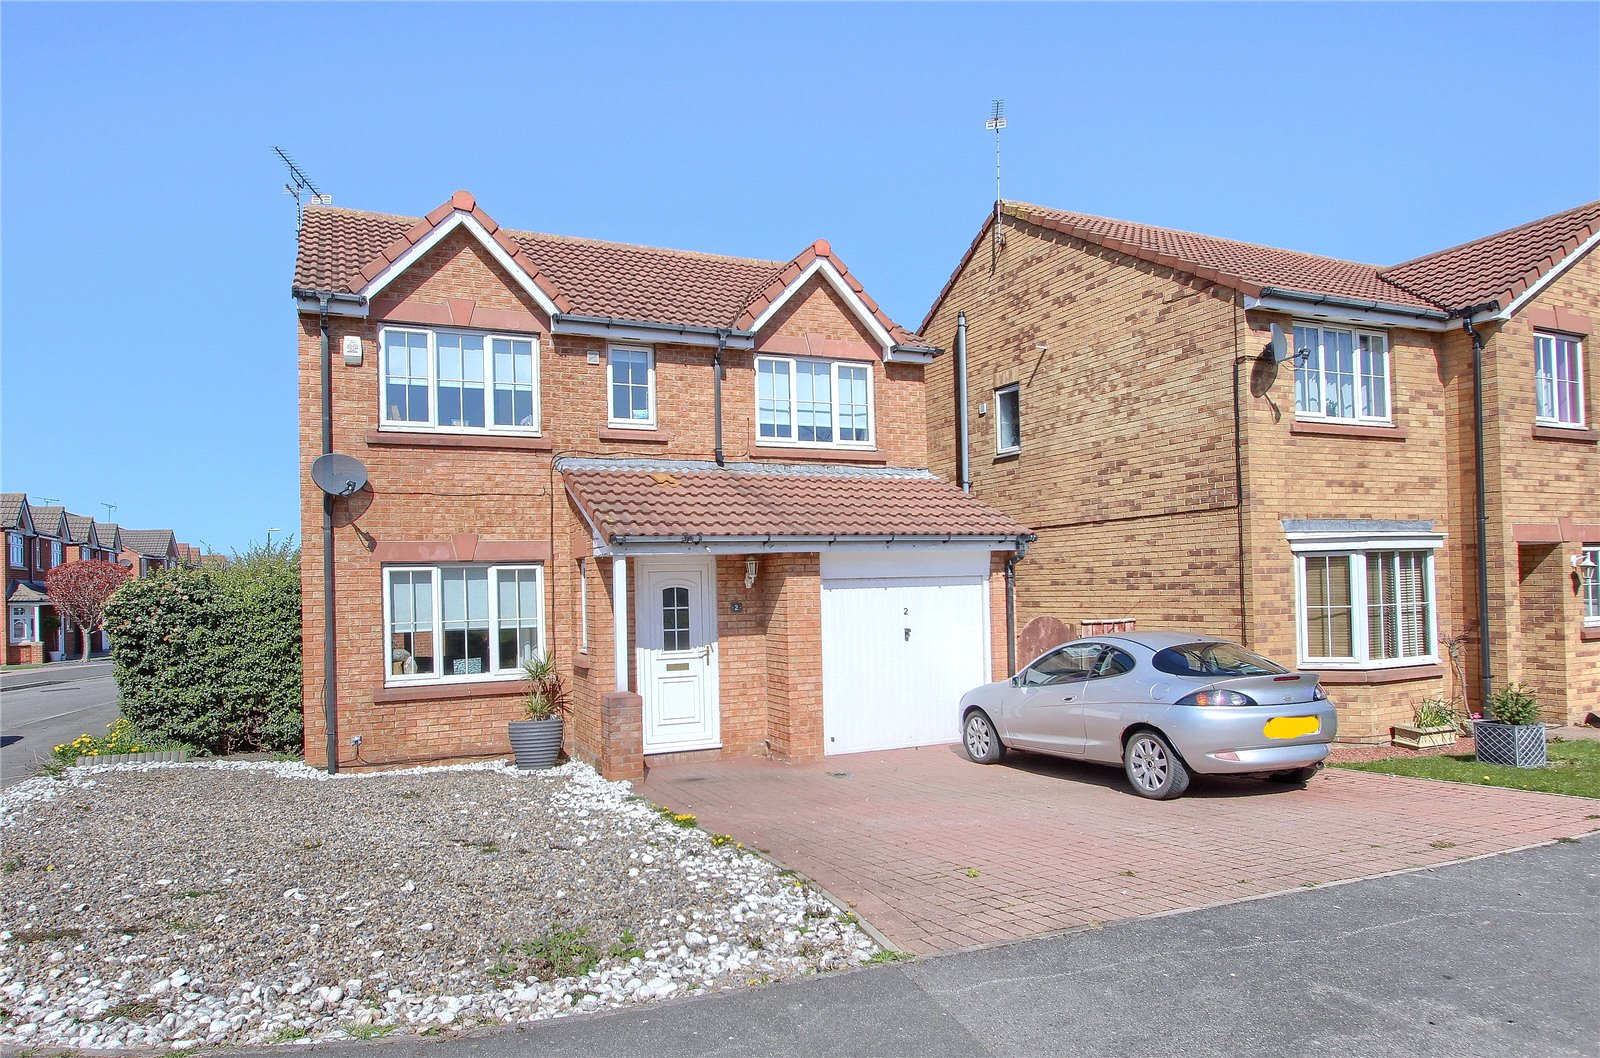 4 bed house for sale in Dulas Close, Redcar - Property Image 1